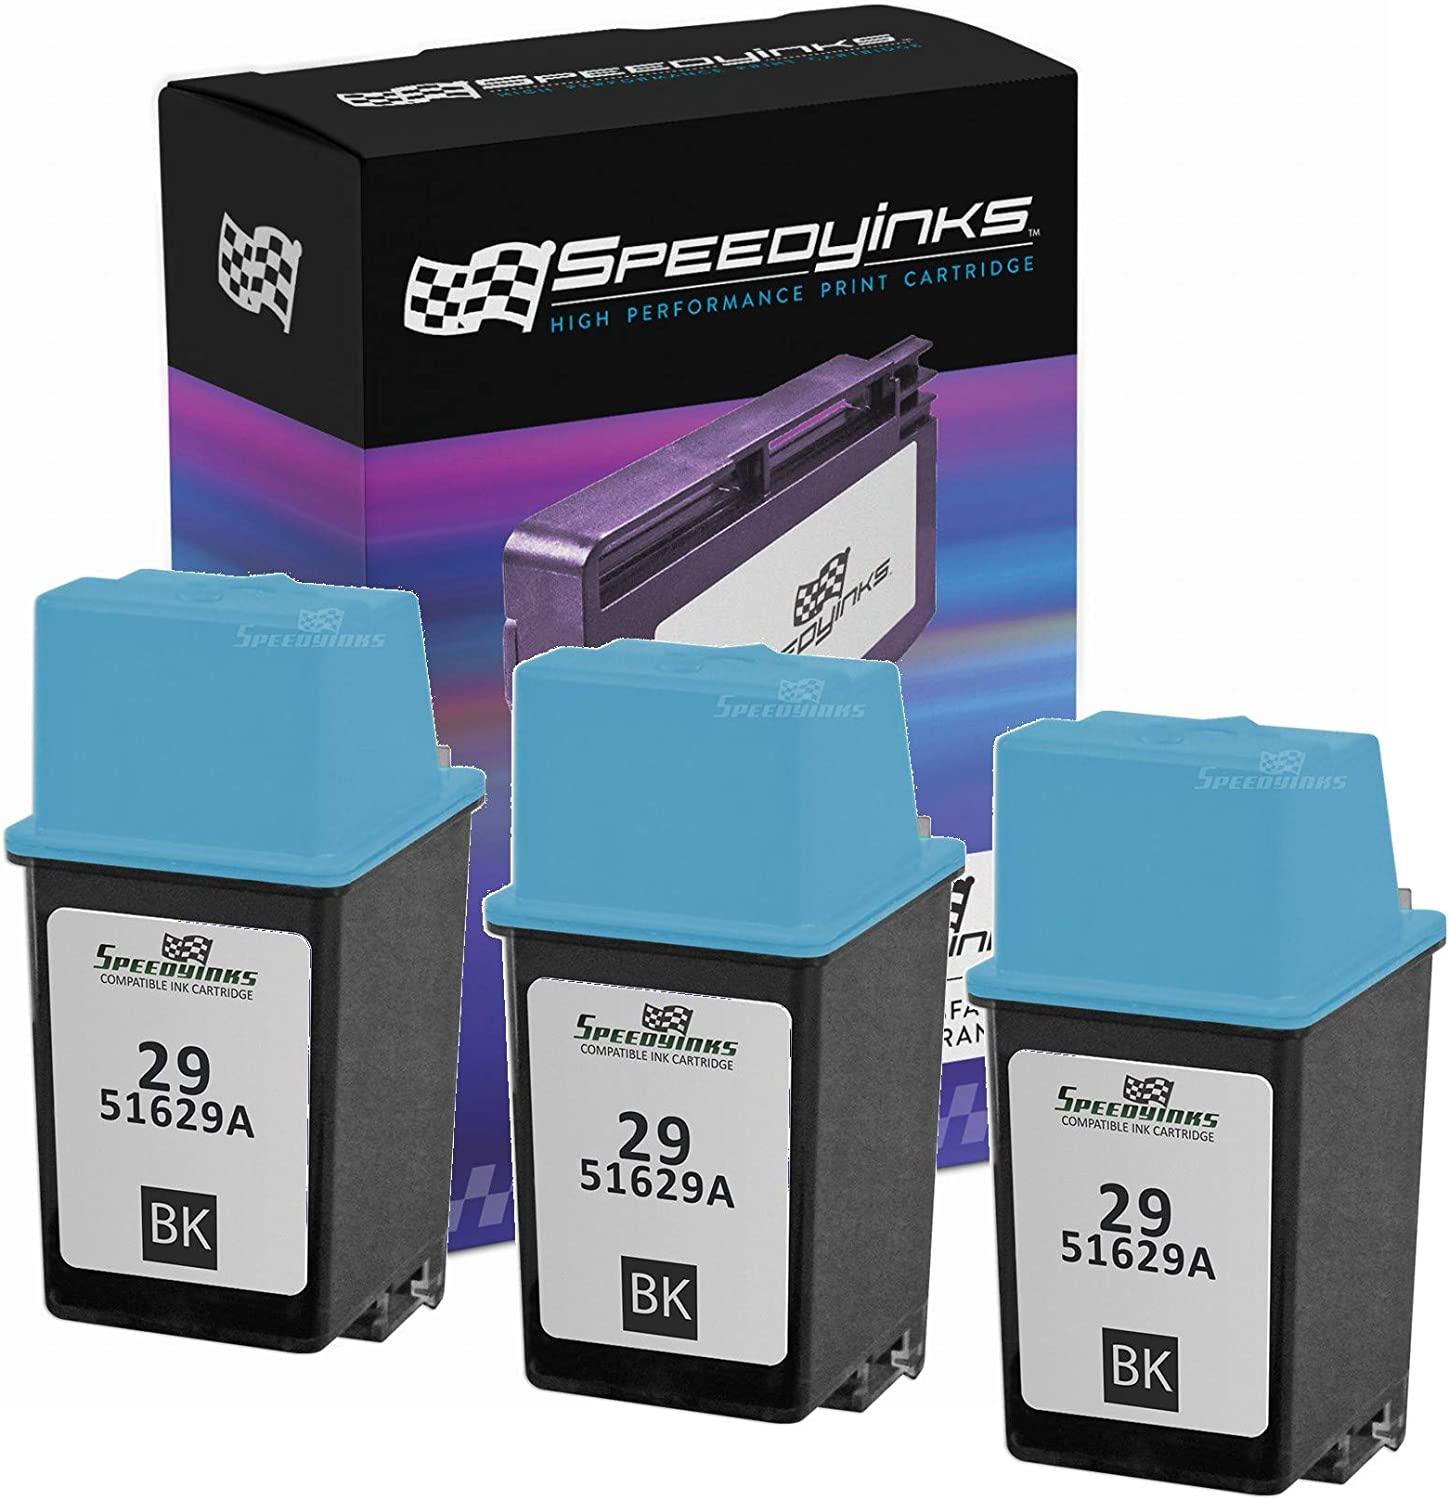 Speedy Inks Remanufactured Toner Cartridge Replacement for HP 29 51629A (Pigment Black, 3-Pack)